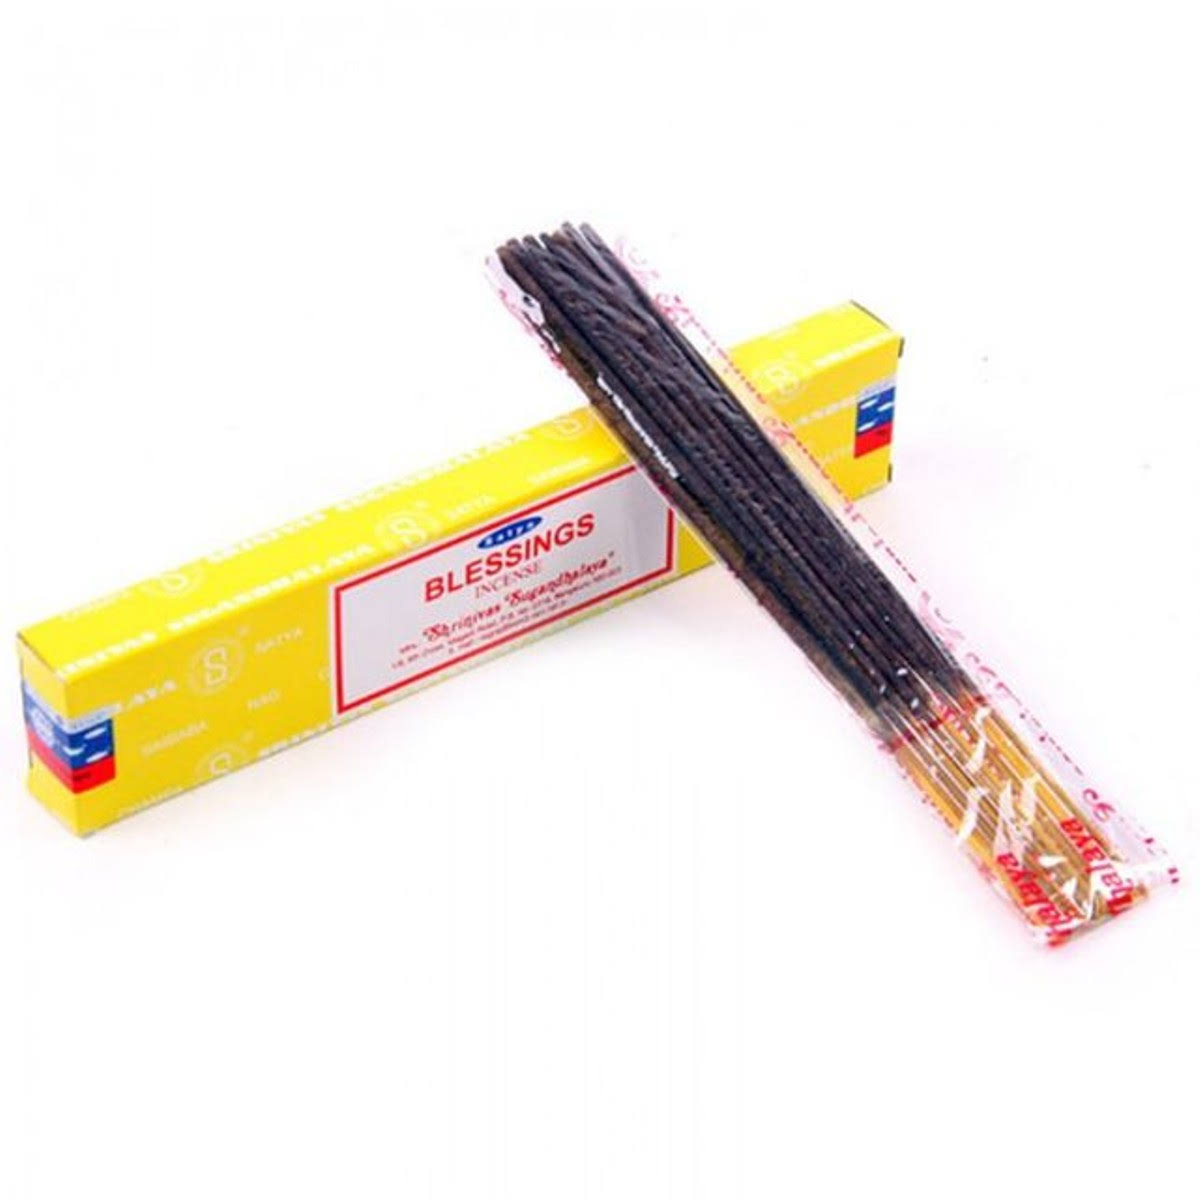 Satya Nag Champa Blessings Incense Sticks - 15g